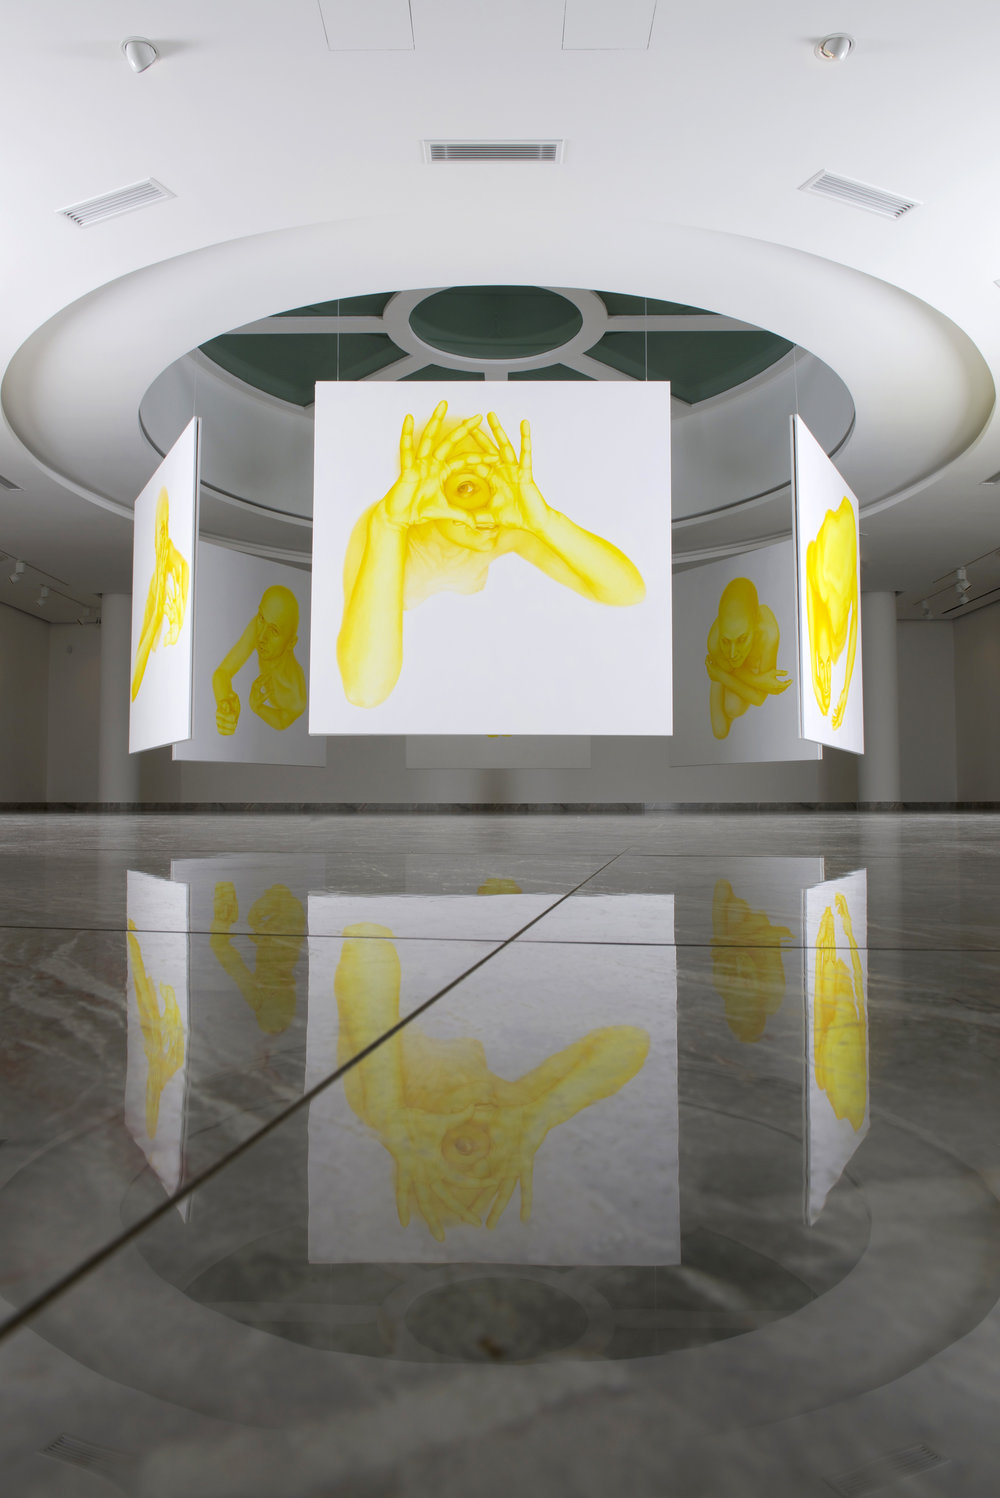 Rotunda, 2016, spatial installation of 12 paintings, each 190 x 190 cm, Nedbalka Gallery, Bratislava, Slovakia